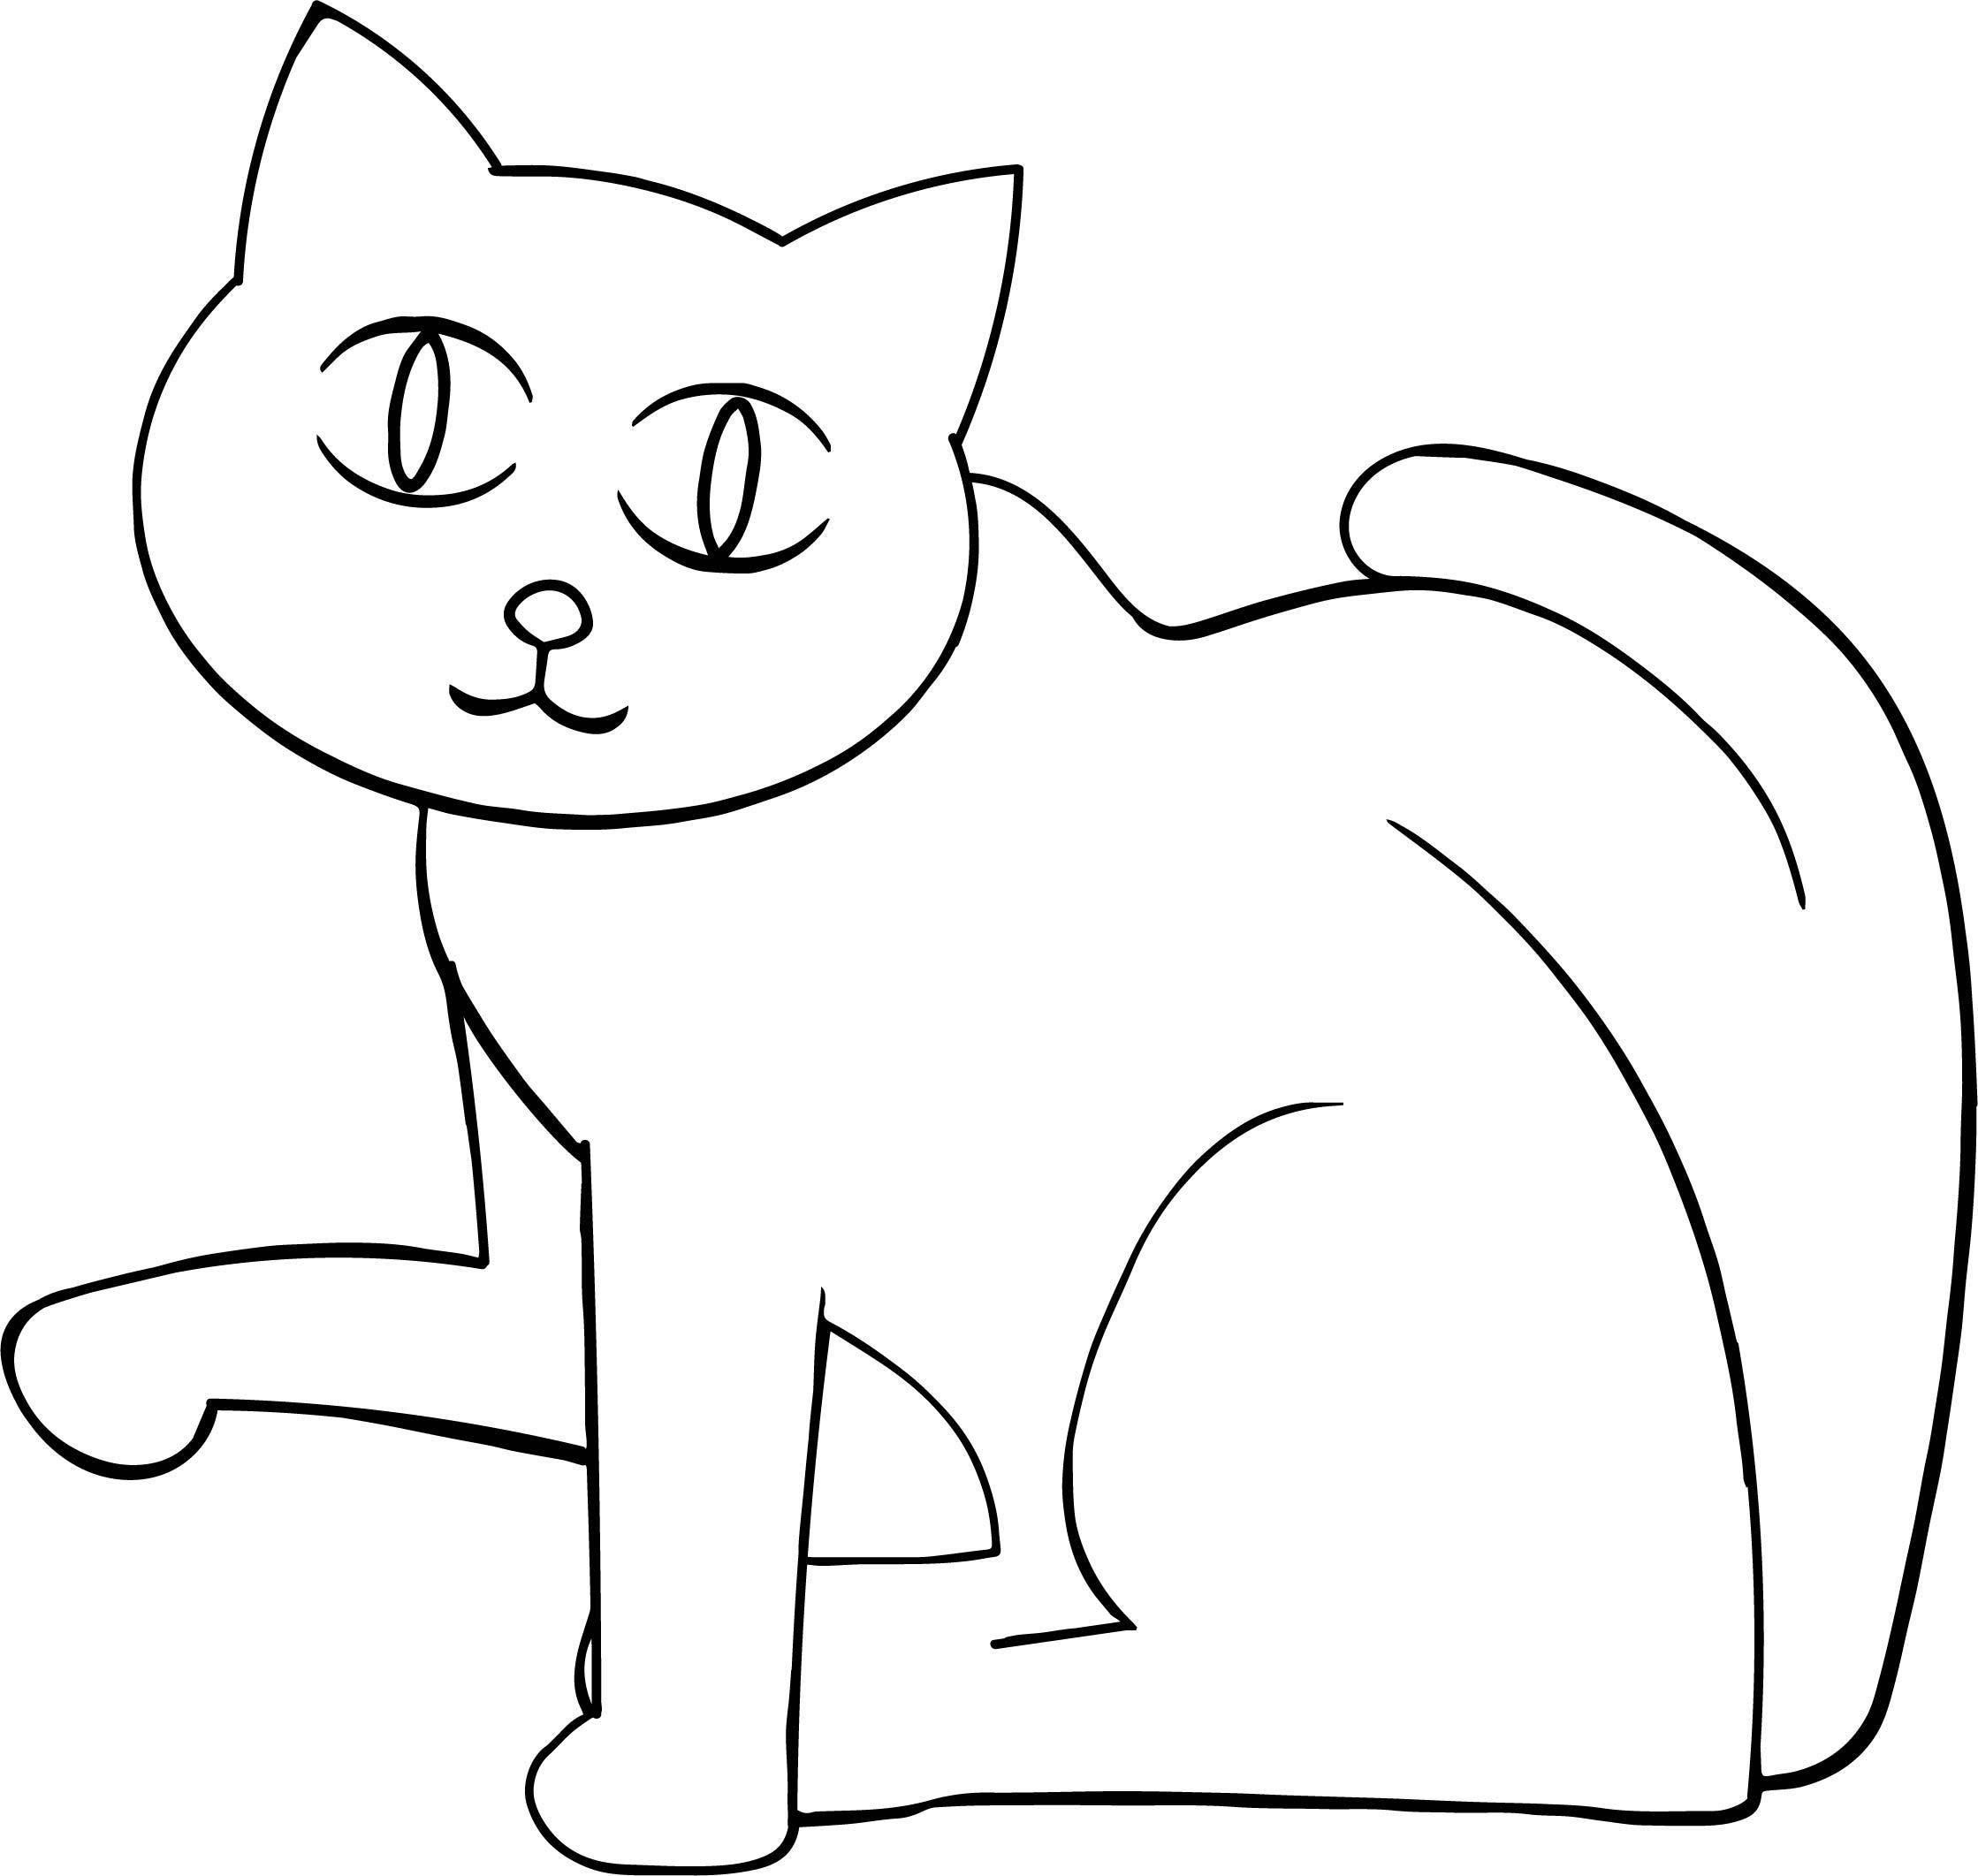 Their Cat Coloring Page